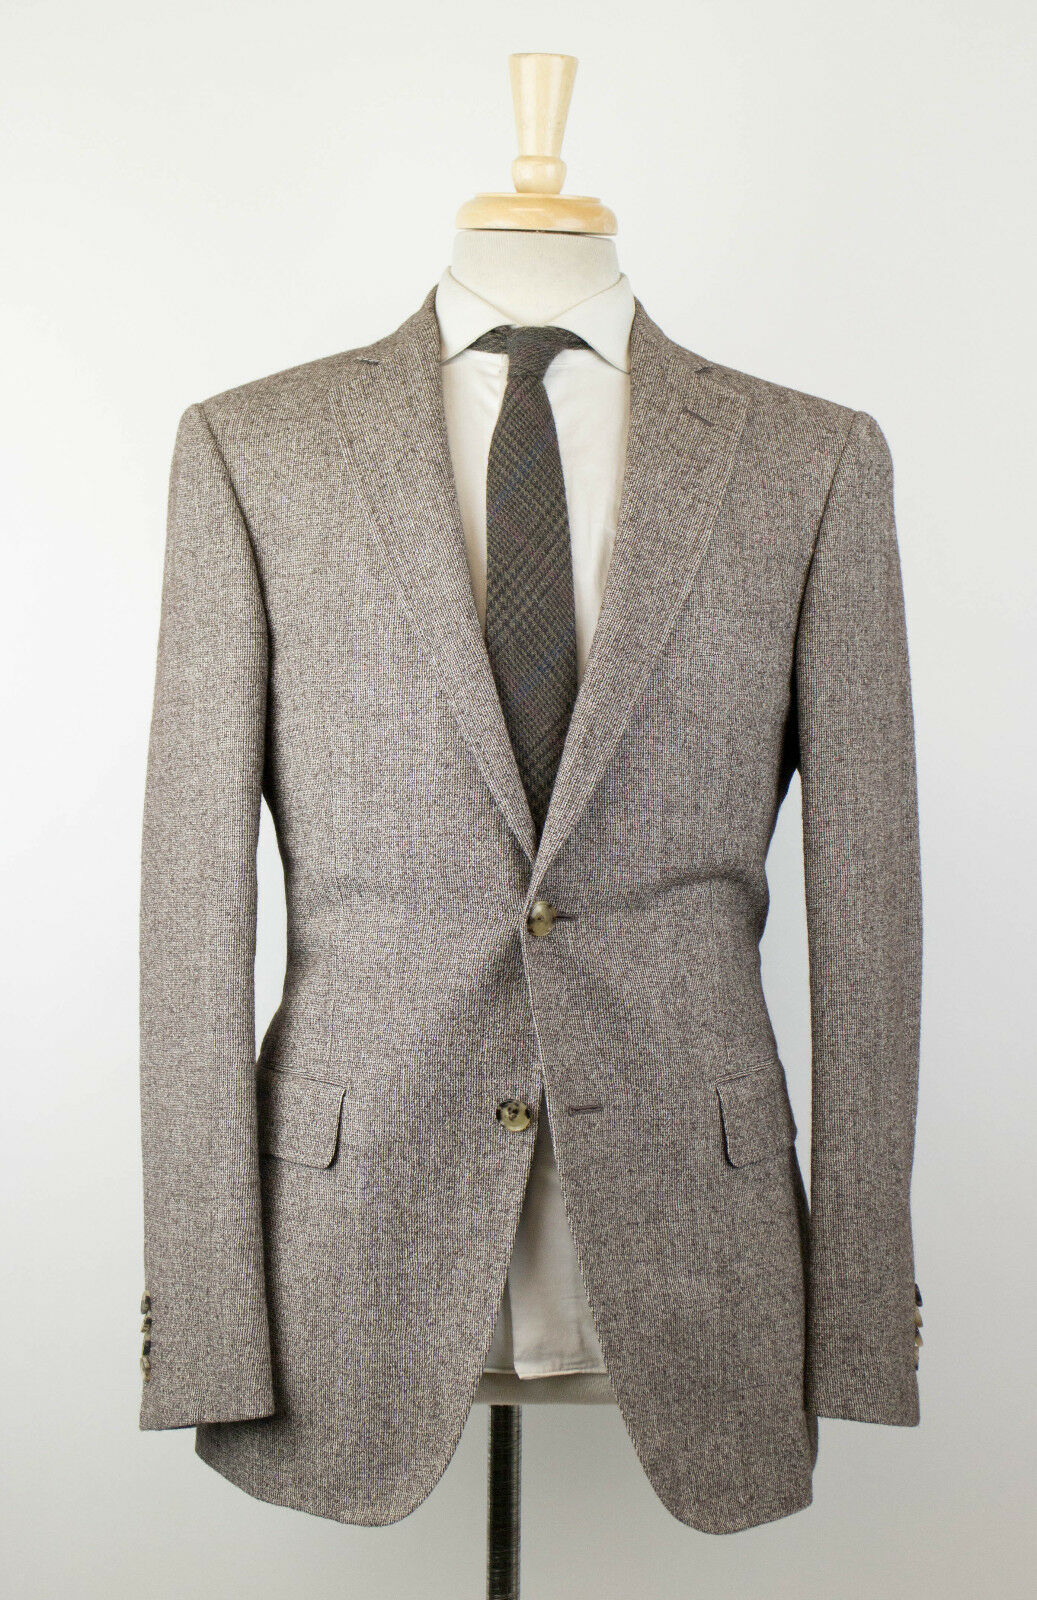 New PAL ZILERI MAINLINE Braun Wool 2 Button Sport Coat Größe 48/38 R Drop 7 1495